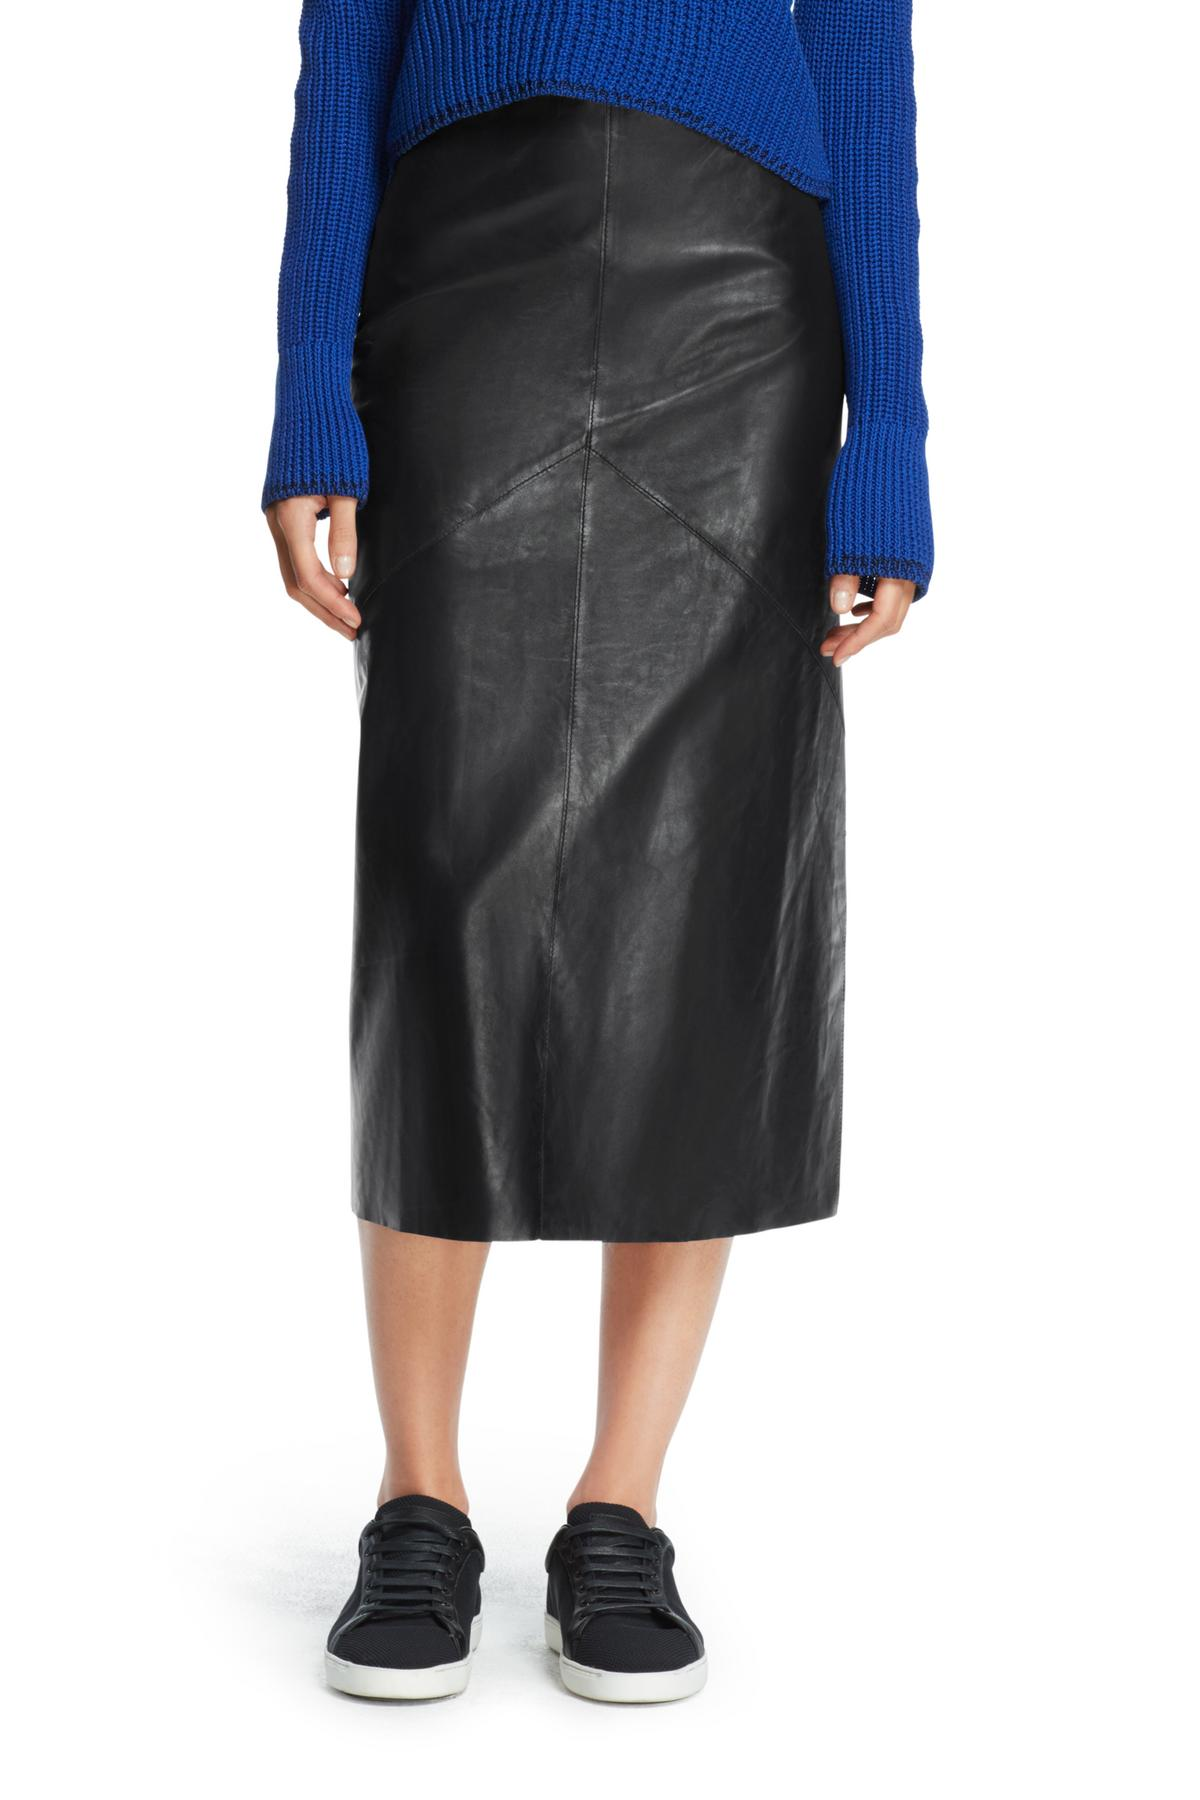 RAG & BONE LEATHER WILLOW SKIRT